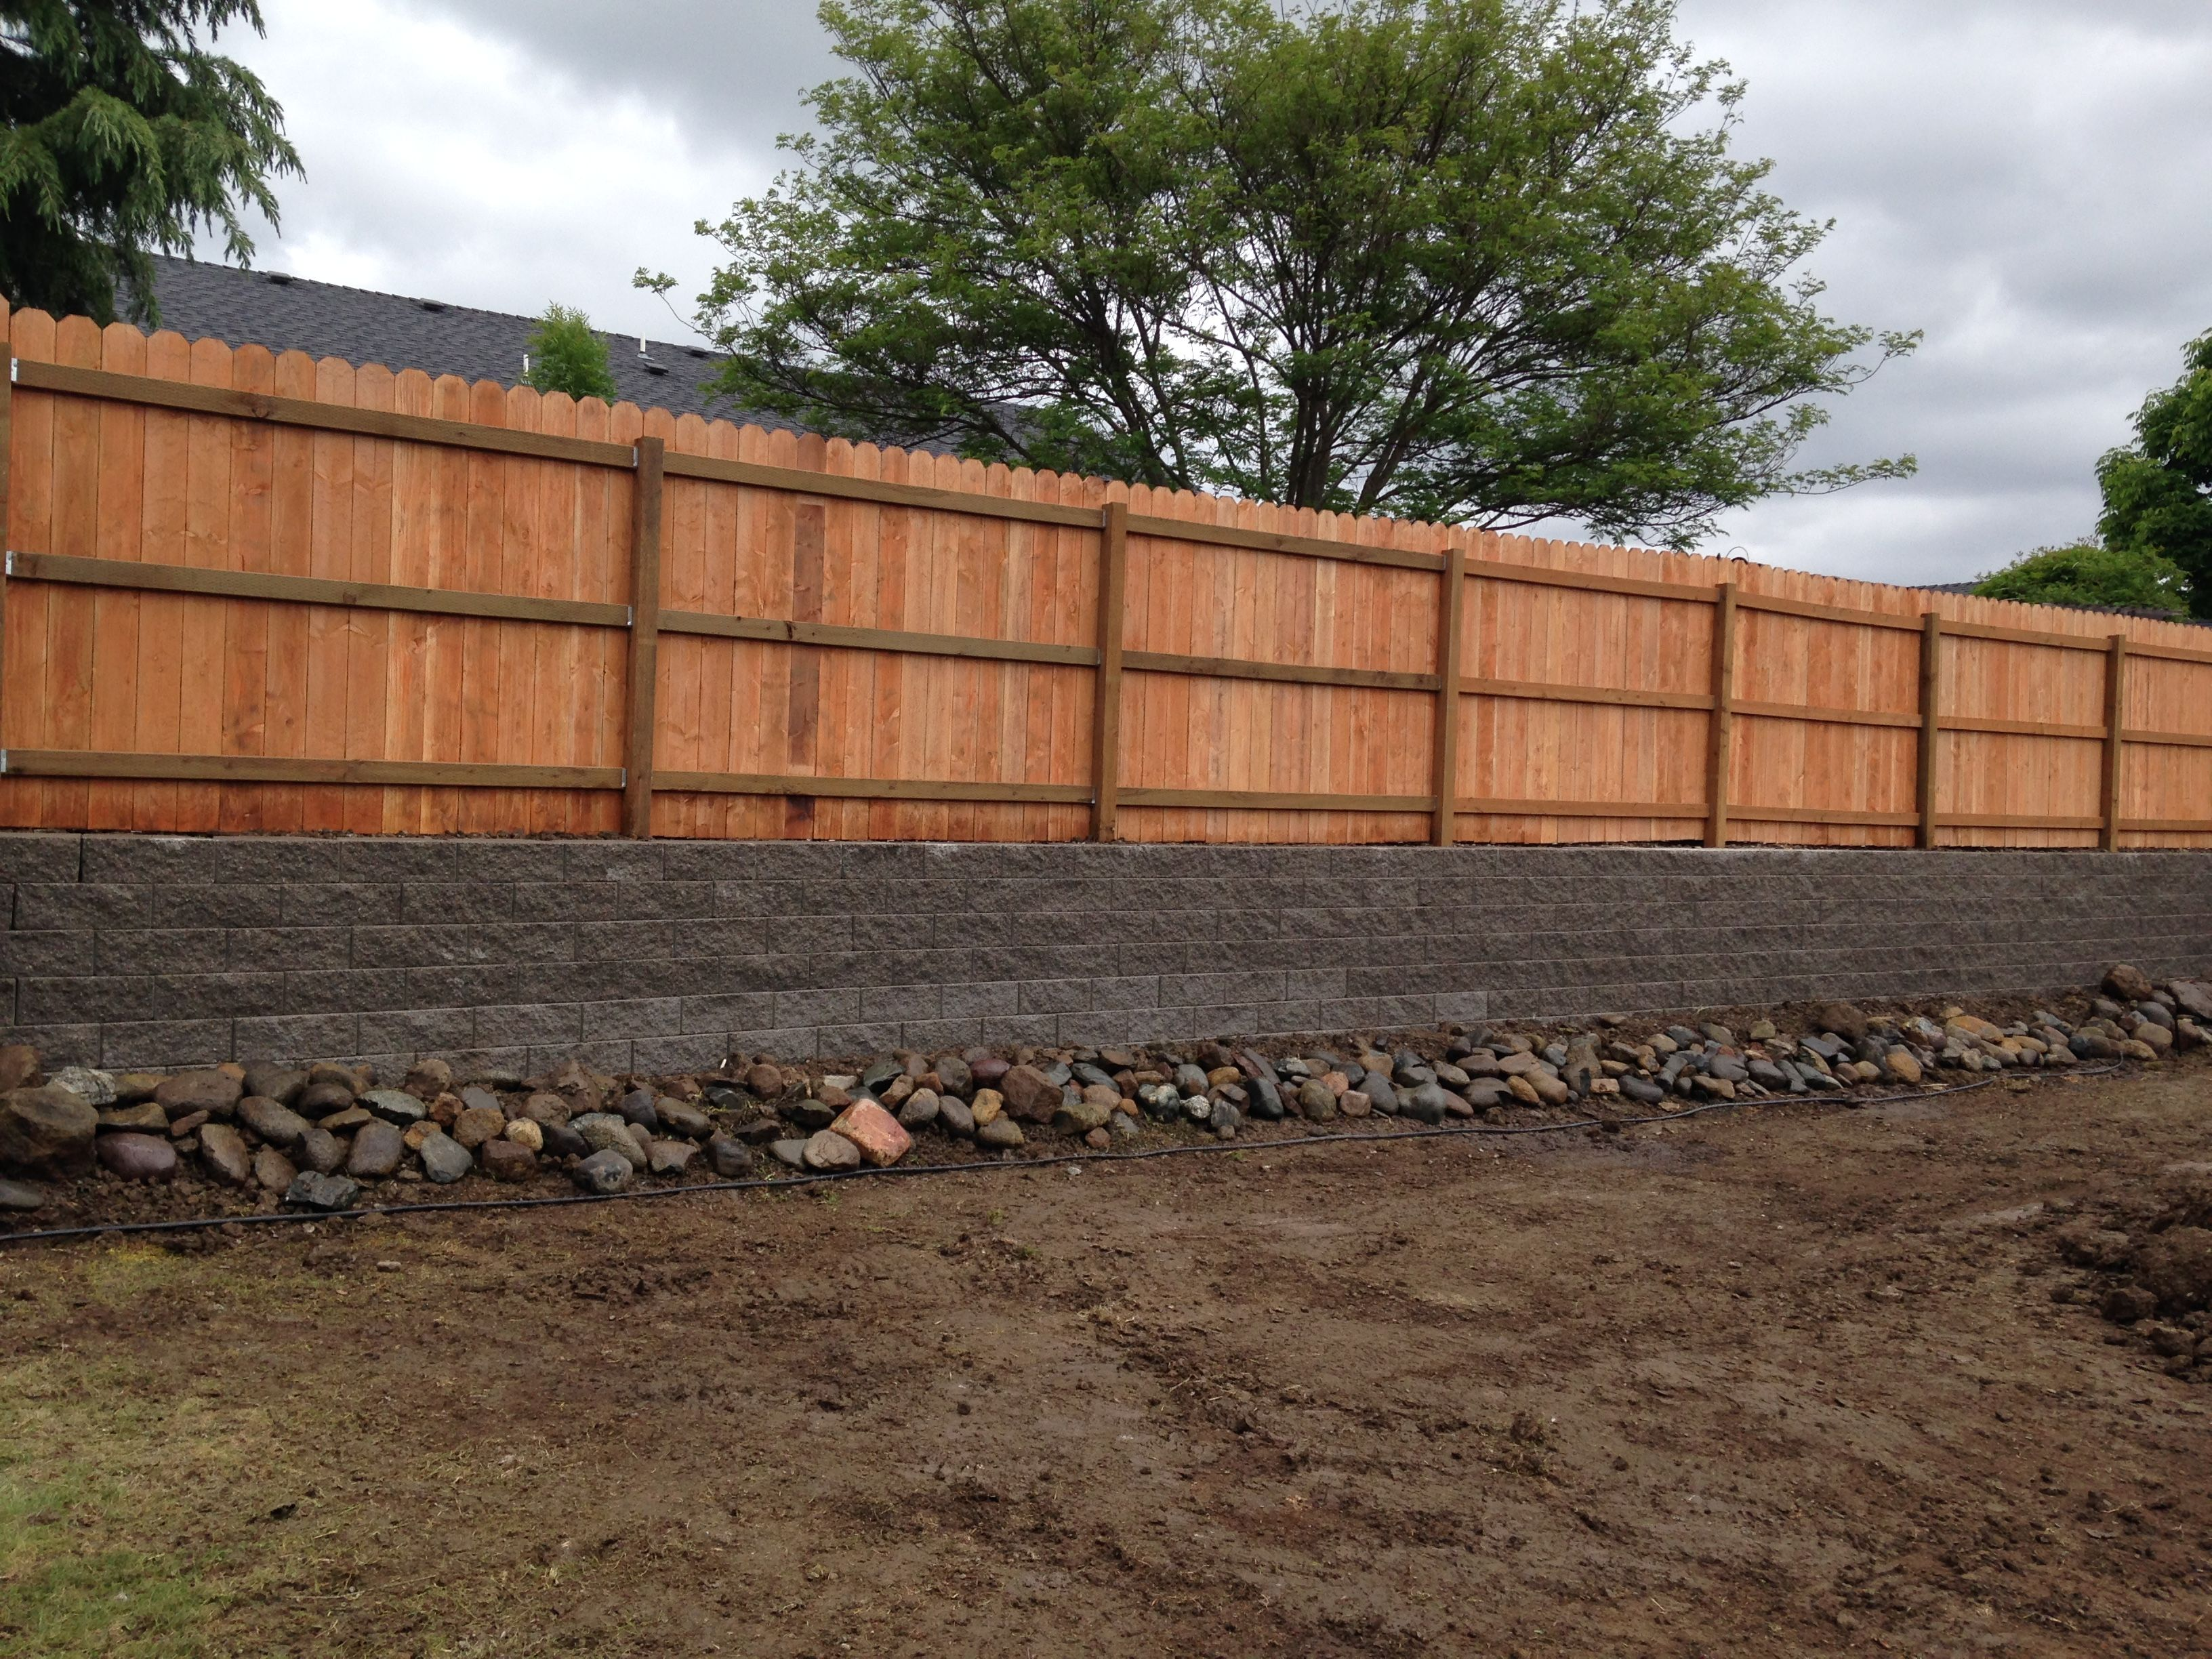 Fencing On Top On Retaining Wall Retaining Wall Fence Retaining Wall Exterior Wall Siding